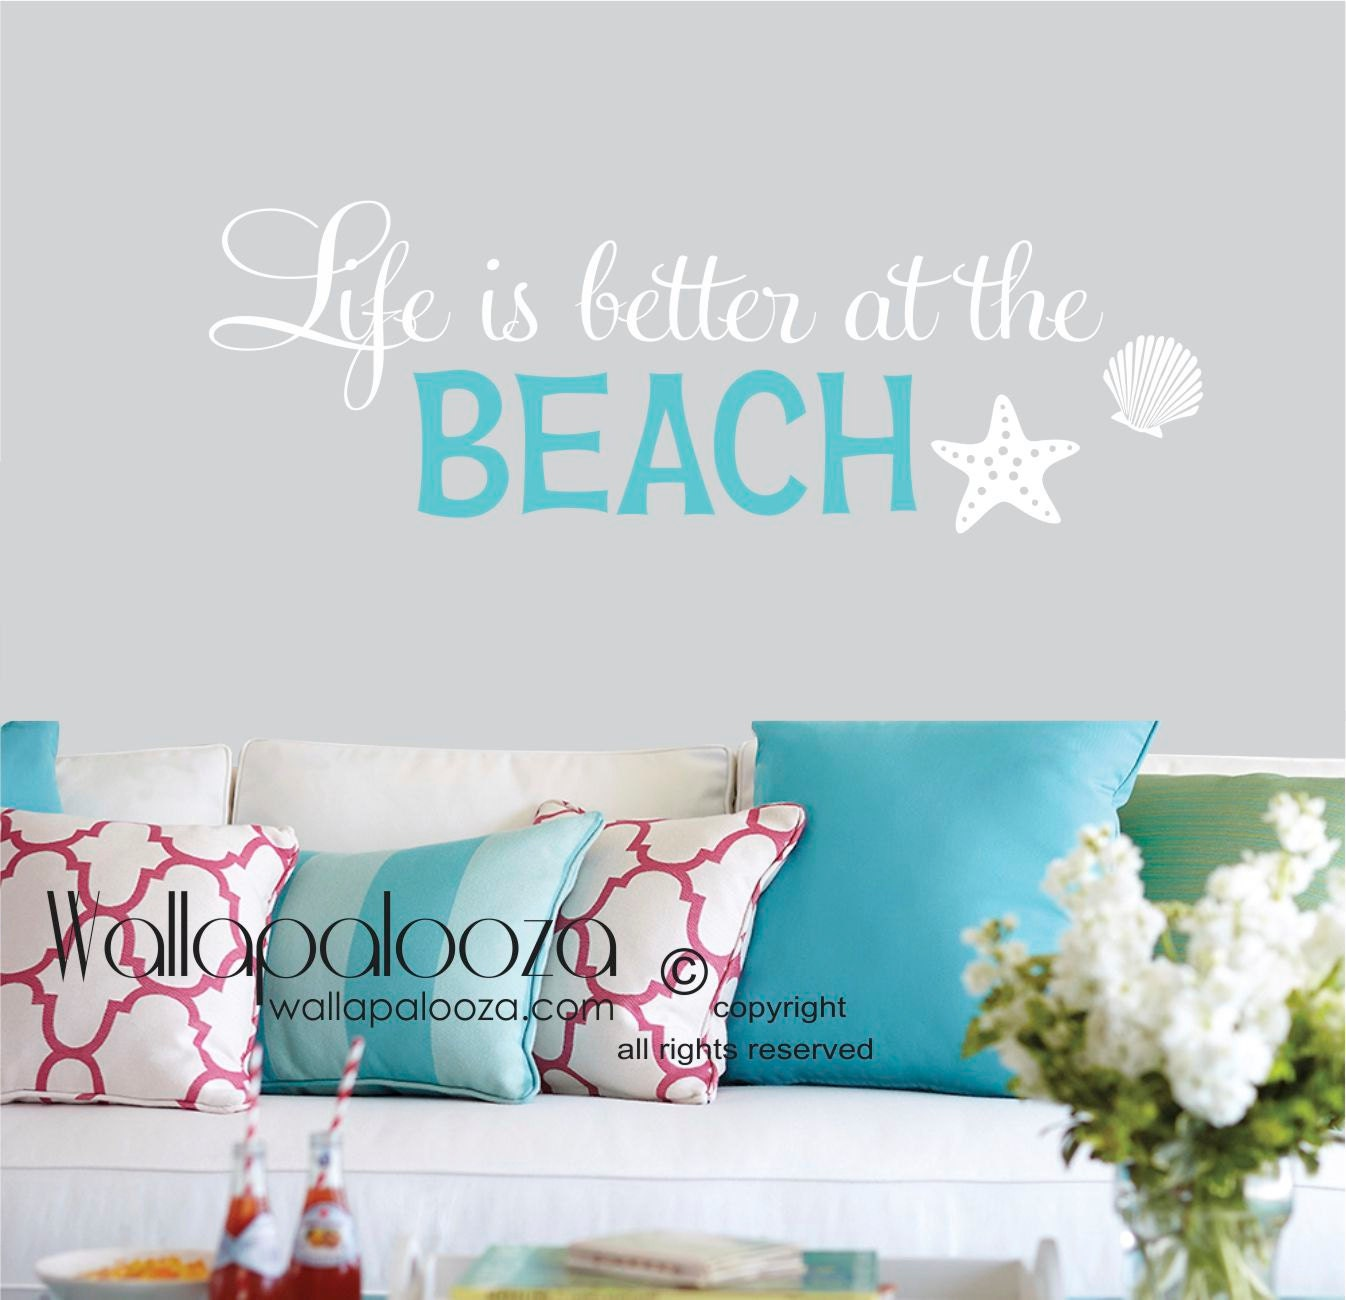 Life is better at the beach wall decal beach wall quote zoom amipublicfo Image collections